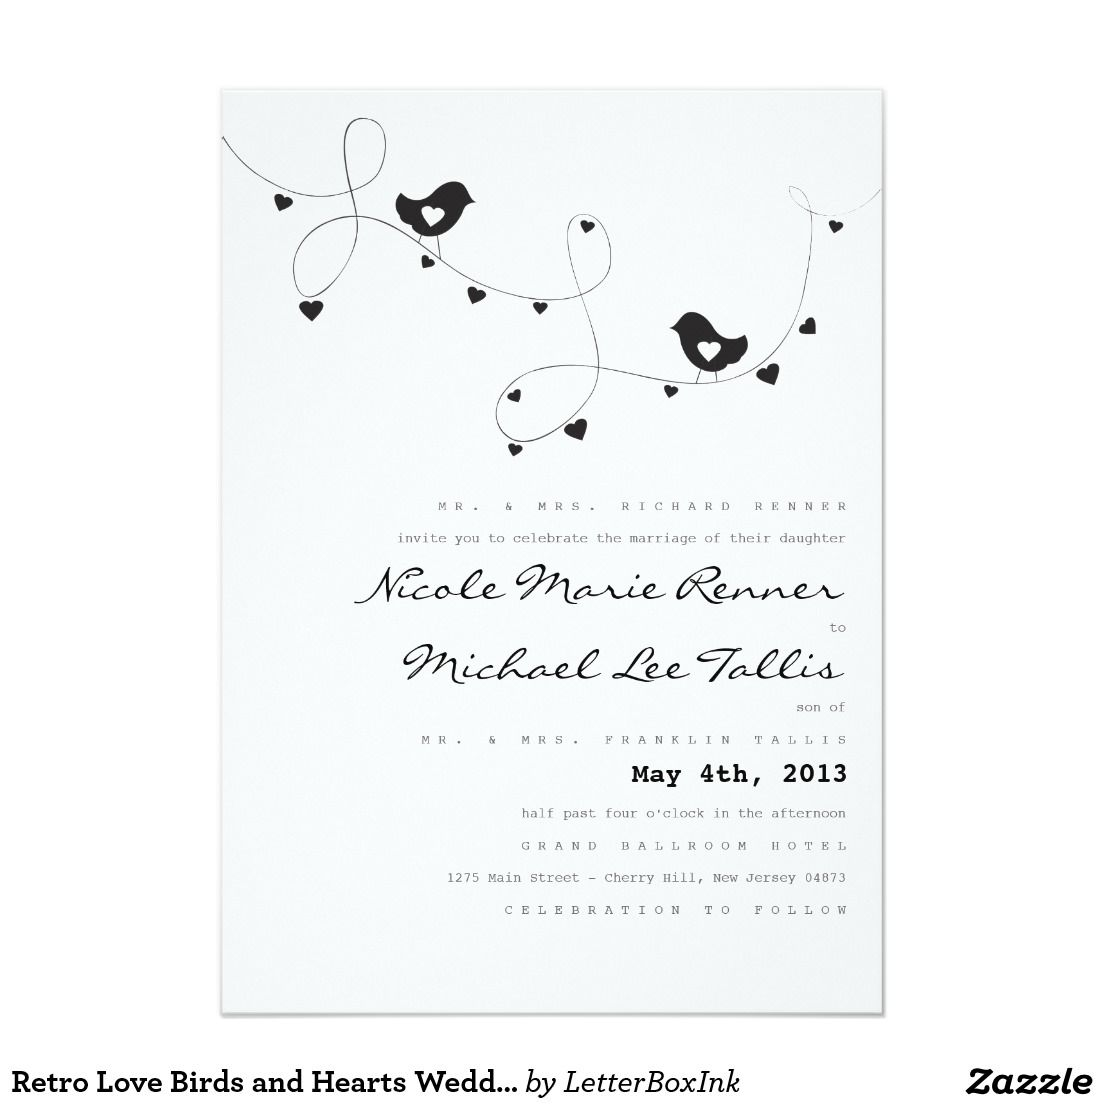 Retro Love Birds and Hearts Wedding Invitations | Heart wedding ...